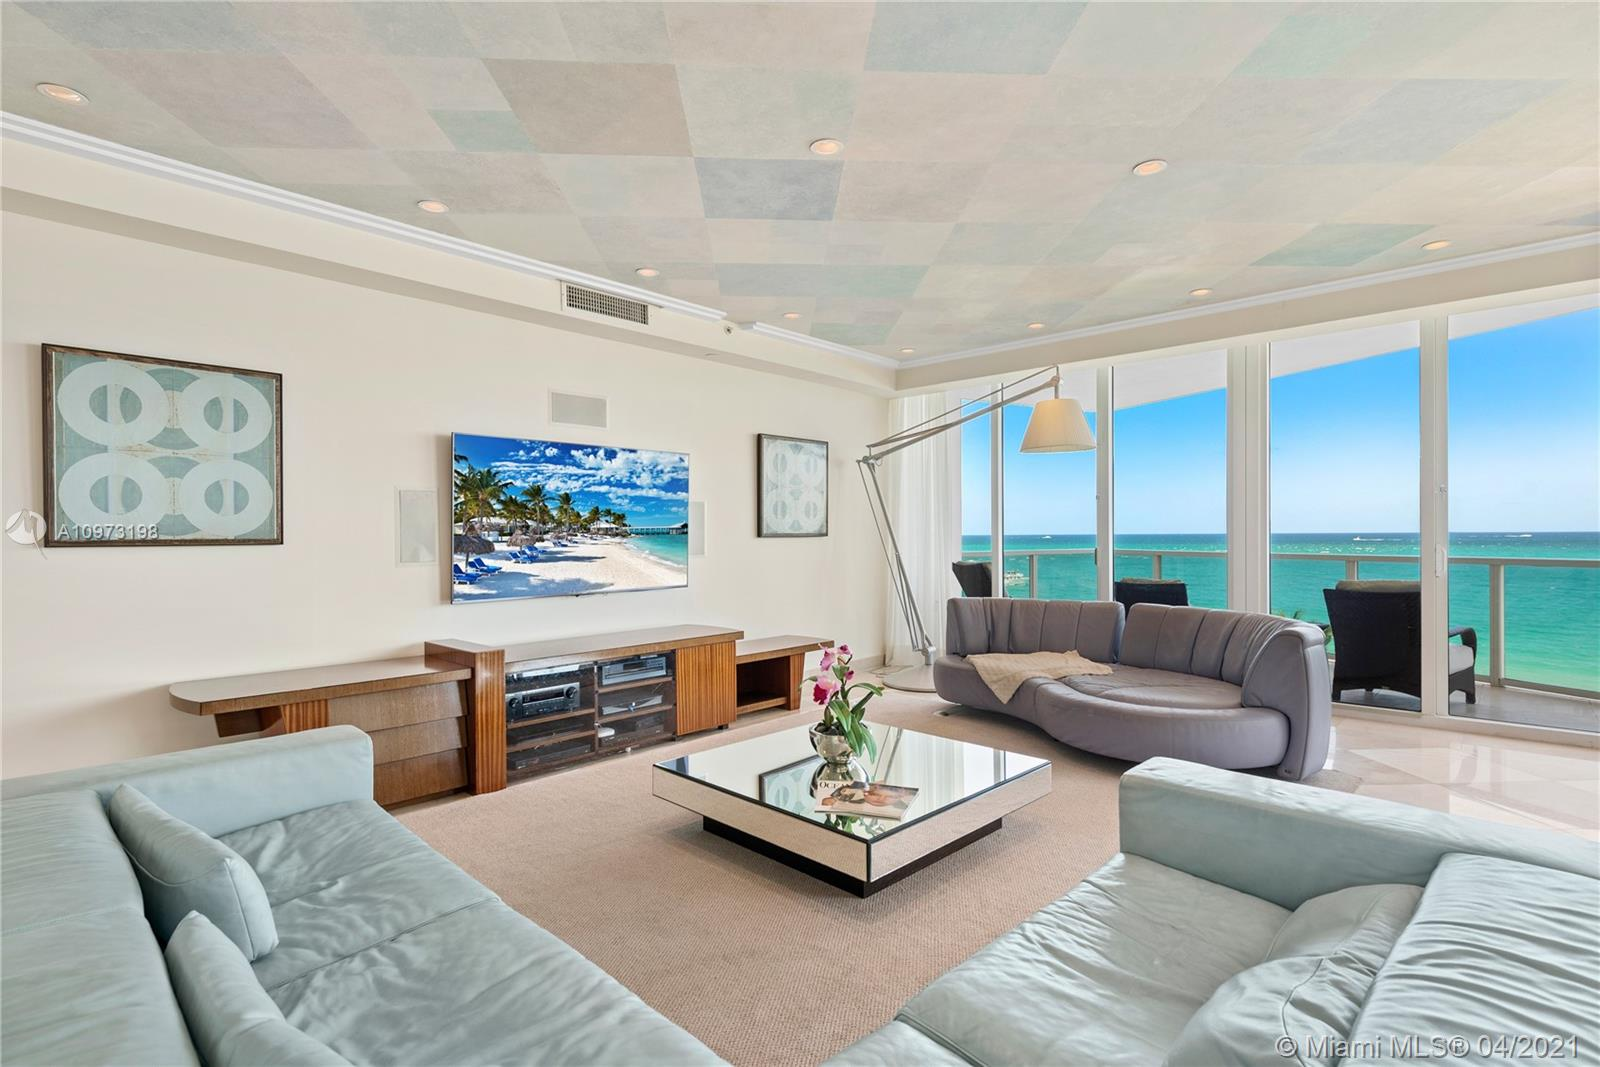 Photo of 10225 Collins Ave #502/504, Bal Harbour, Florida, 33154 -